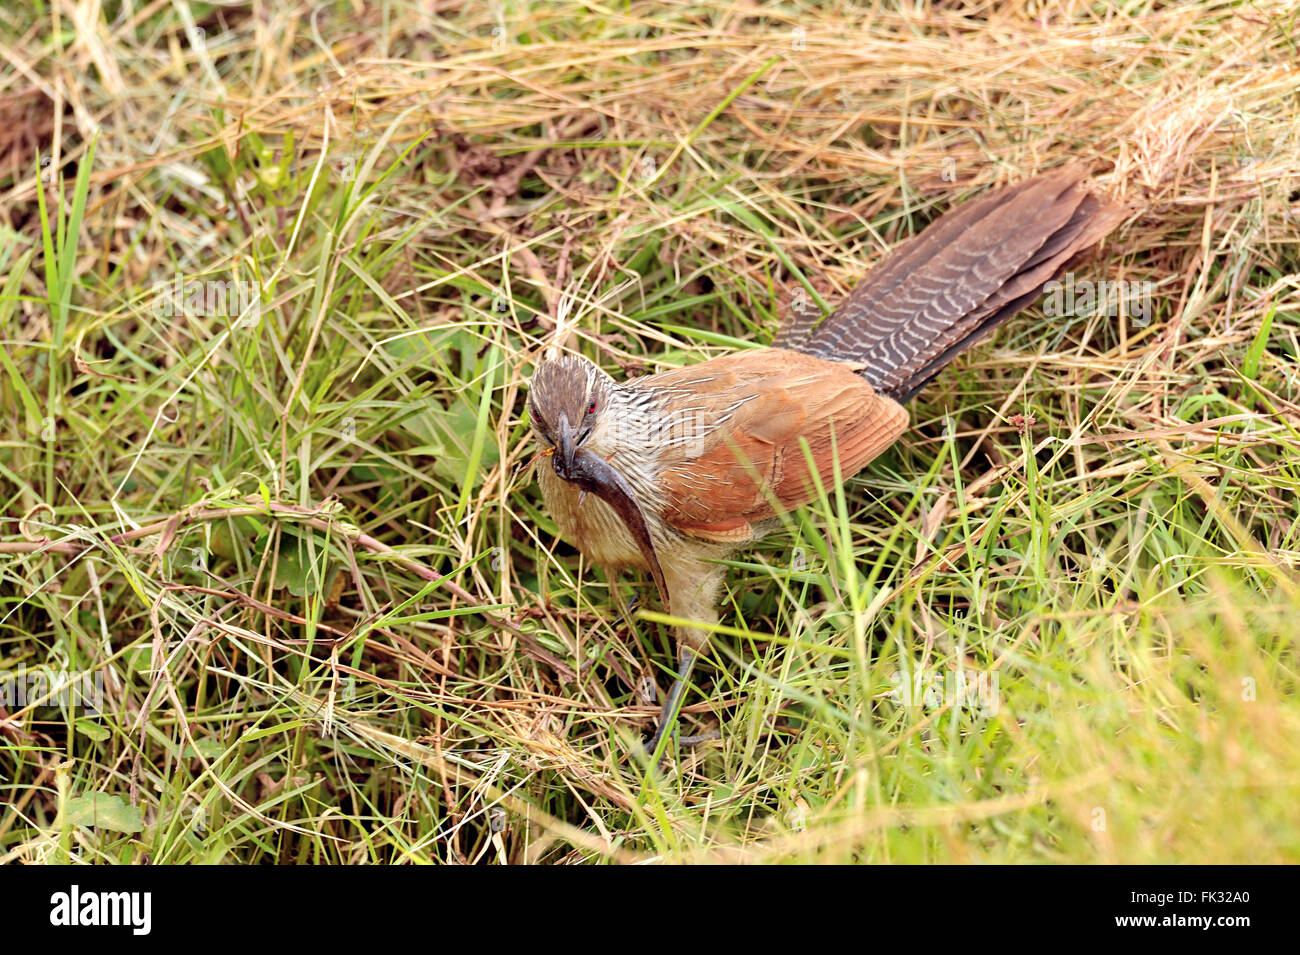 White-Browed Coucal, Centropus superciliosus, with small fish in its bill - Stock Image